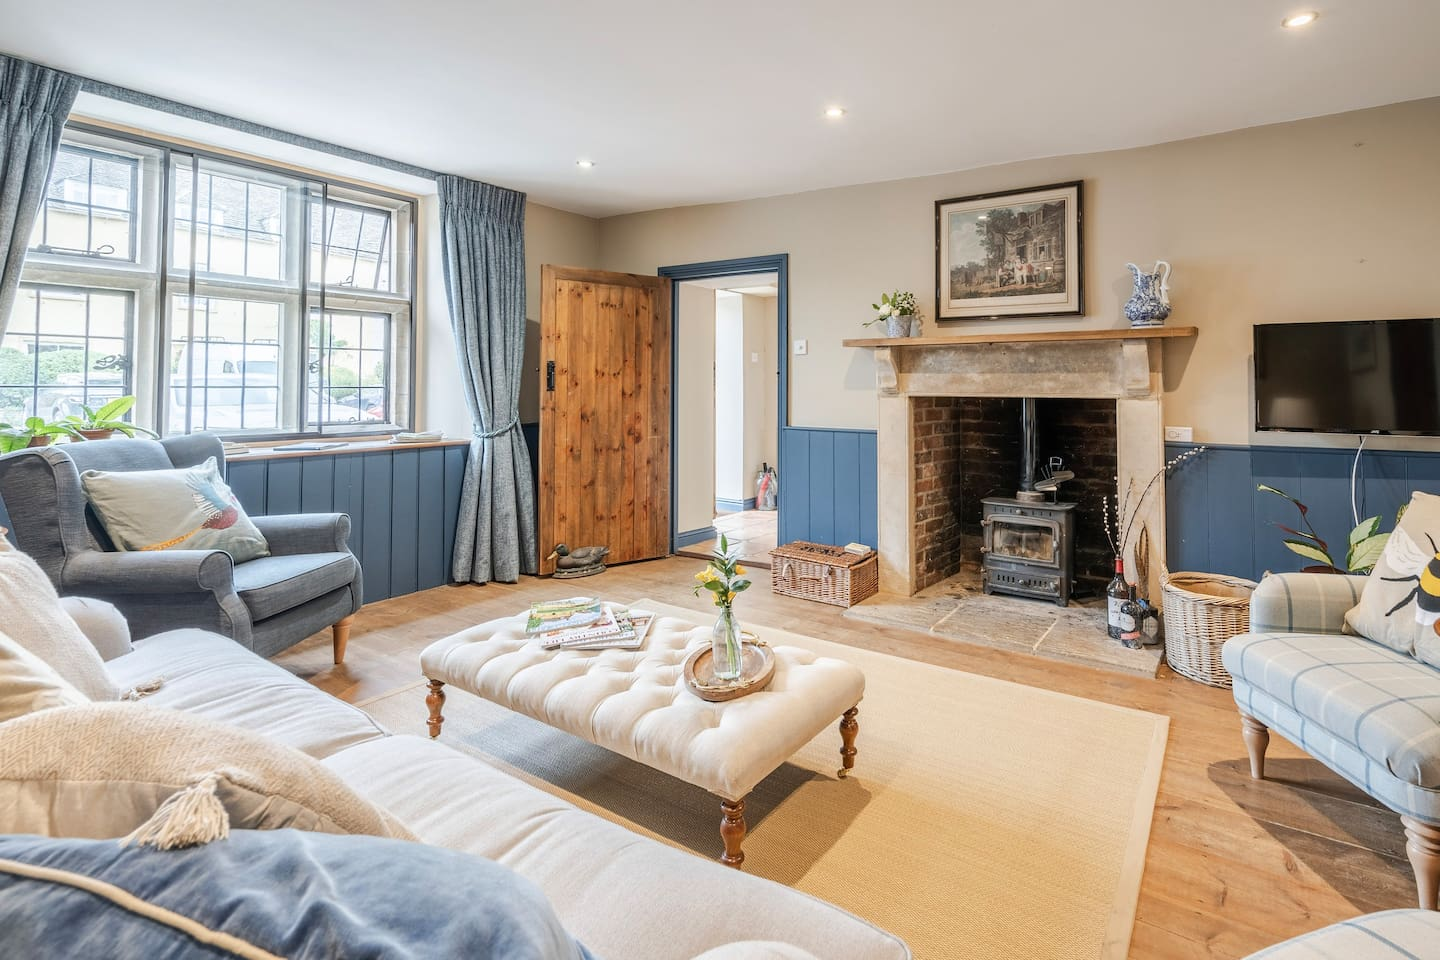 Living room - light and airy in the summer or cosy in the winter with the wood-burner lit!